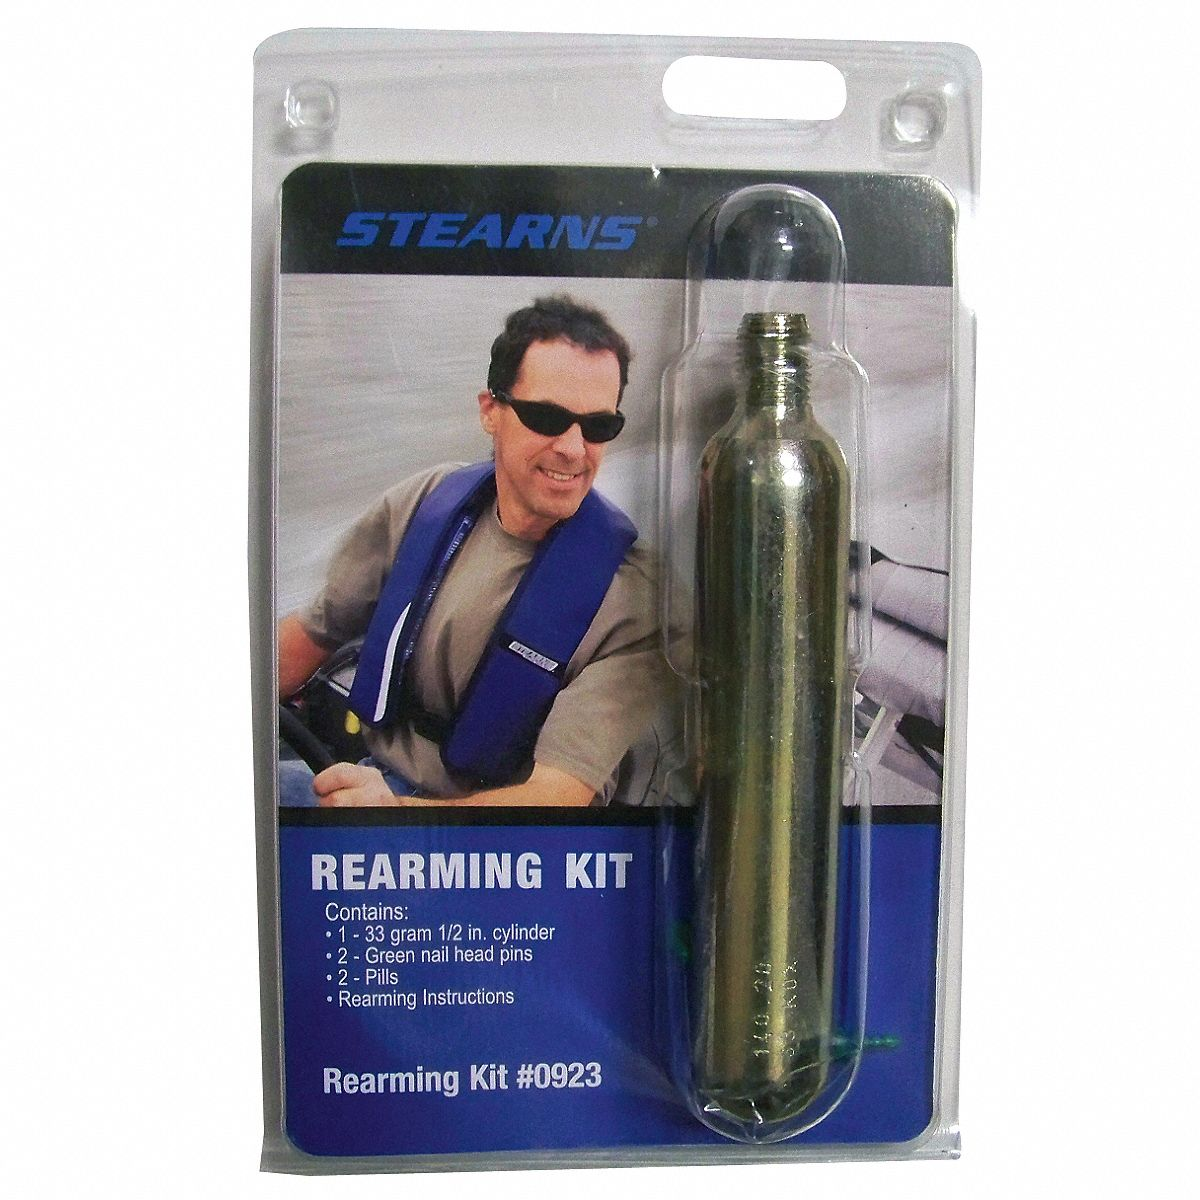 PFD Rearming Kit, For Use With PFD 1339, 1341, 1343, and 0575